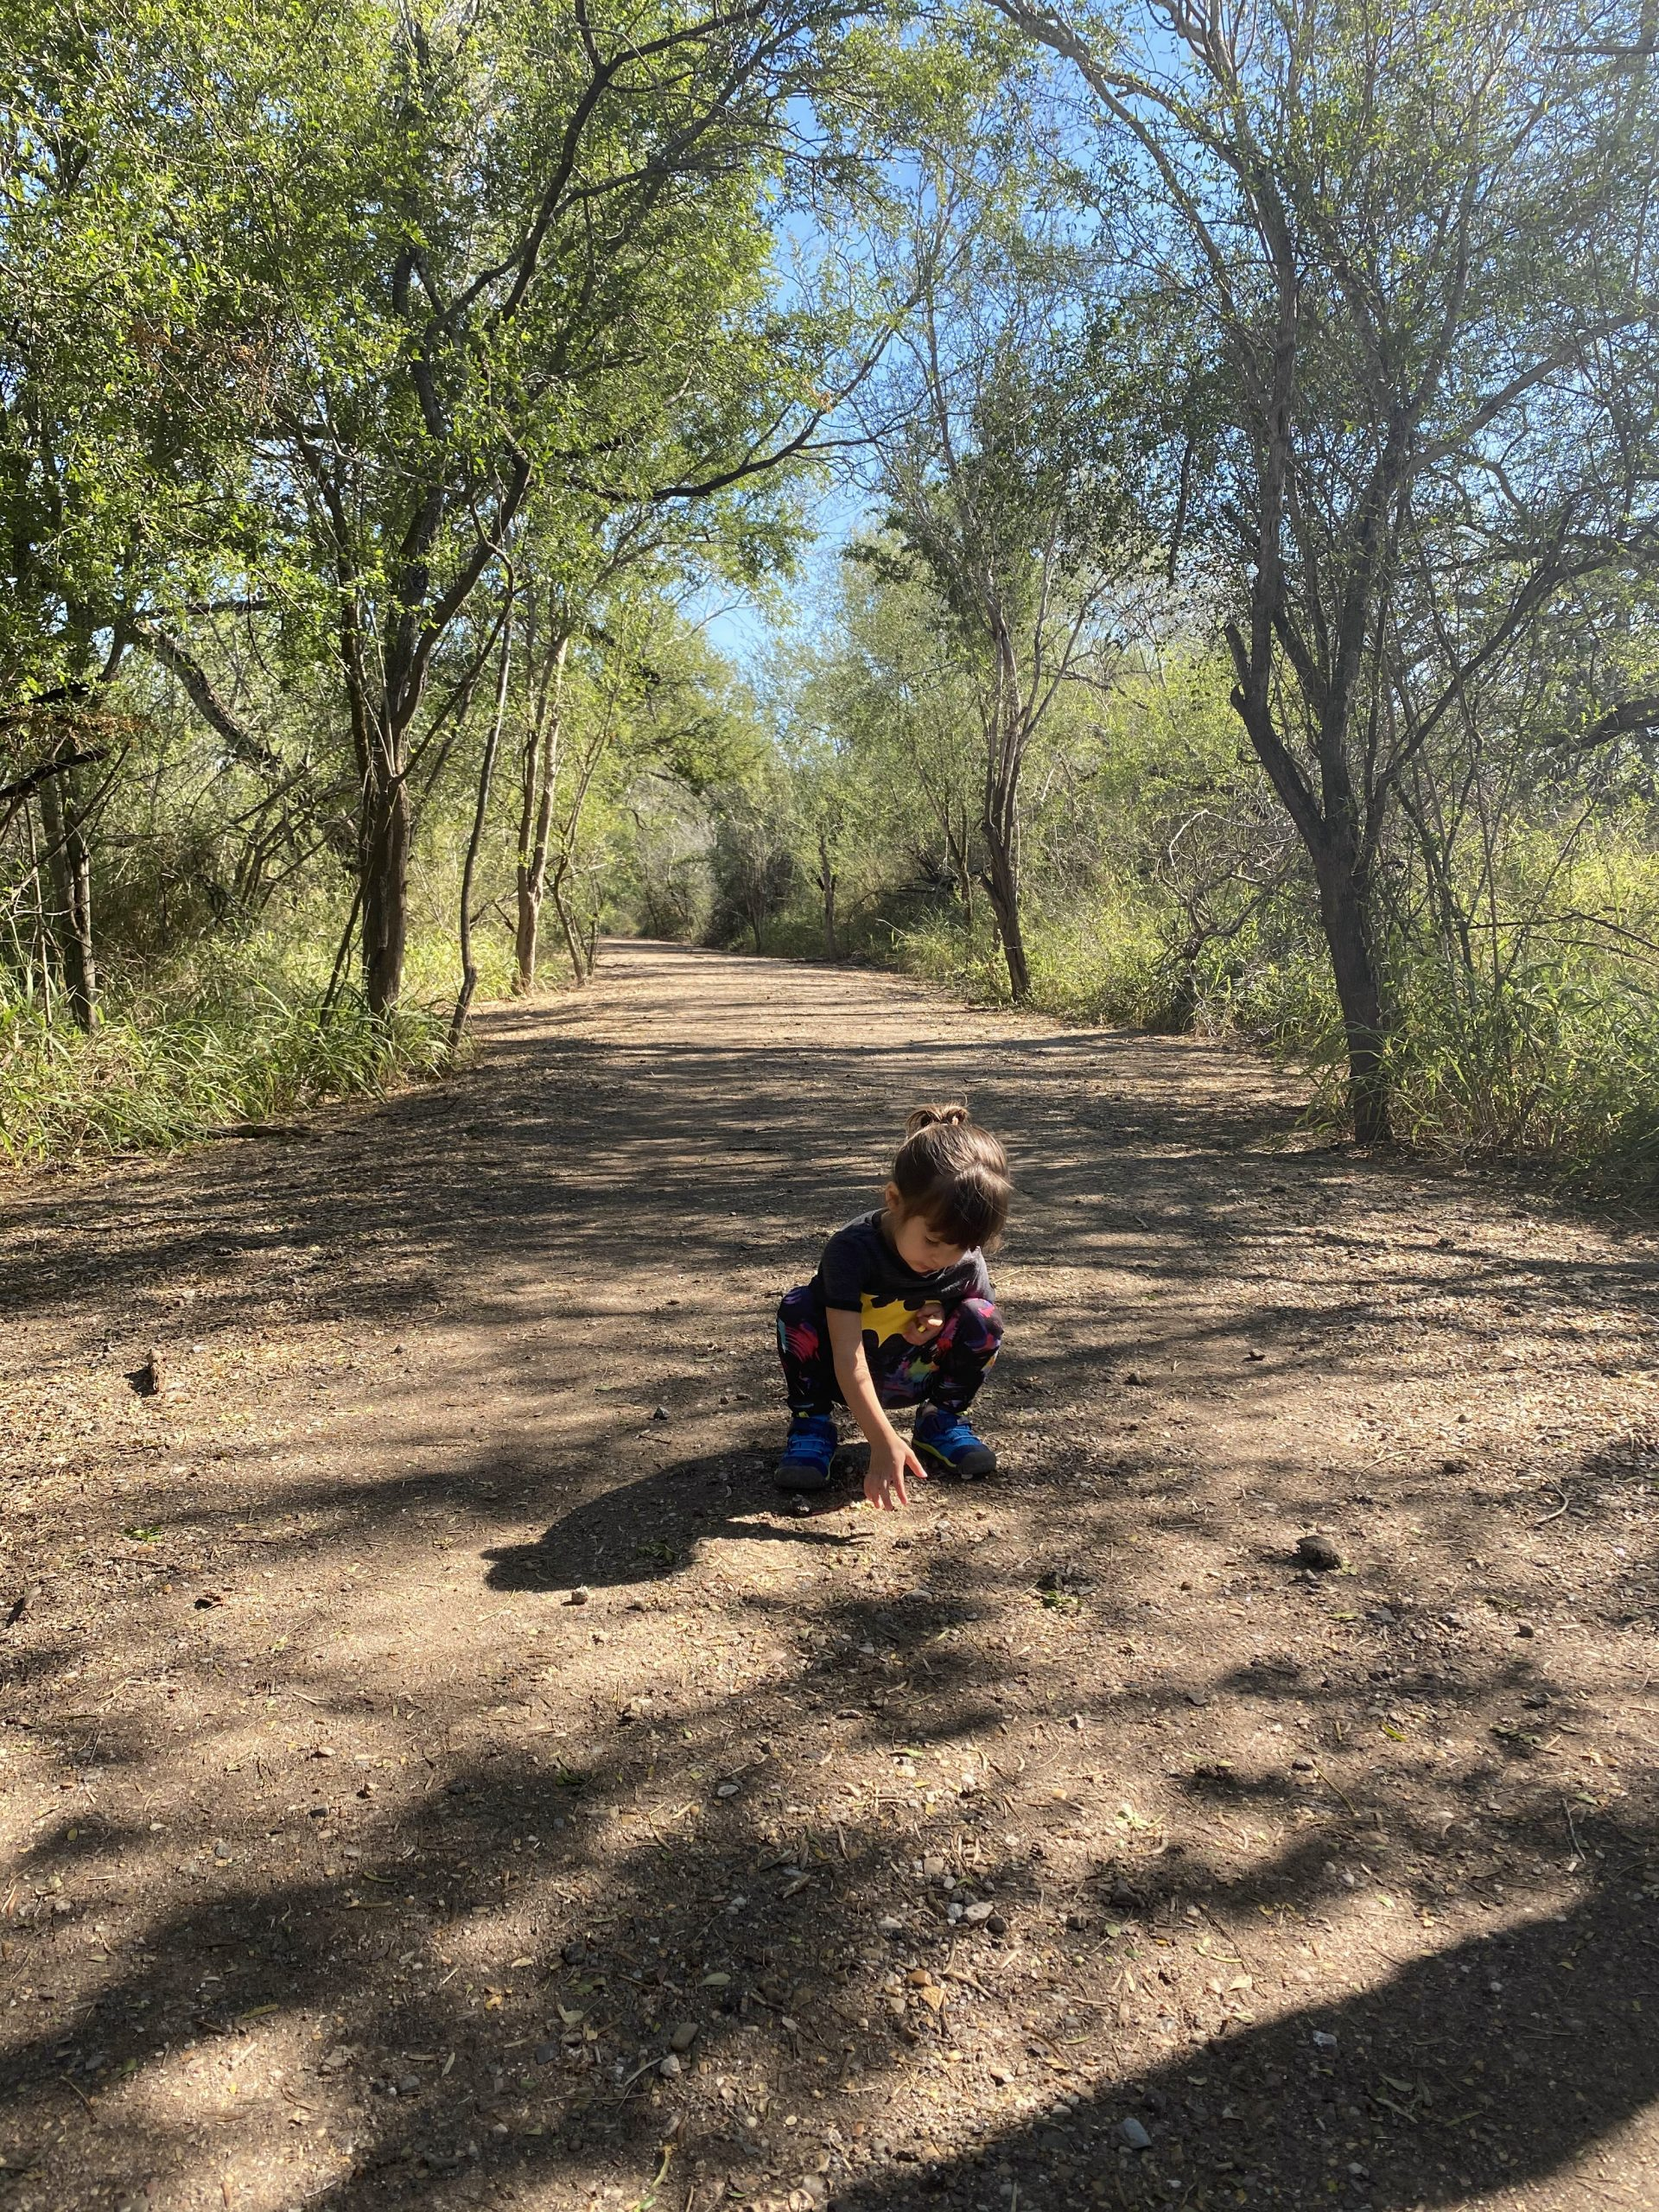 5 Reasons To Take Up Hiking With Kids